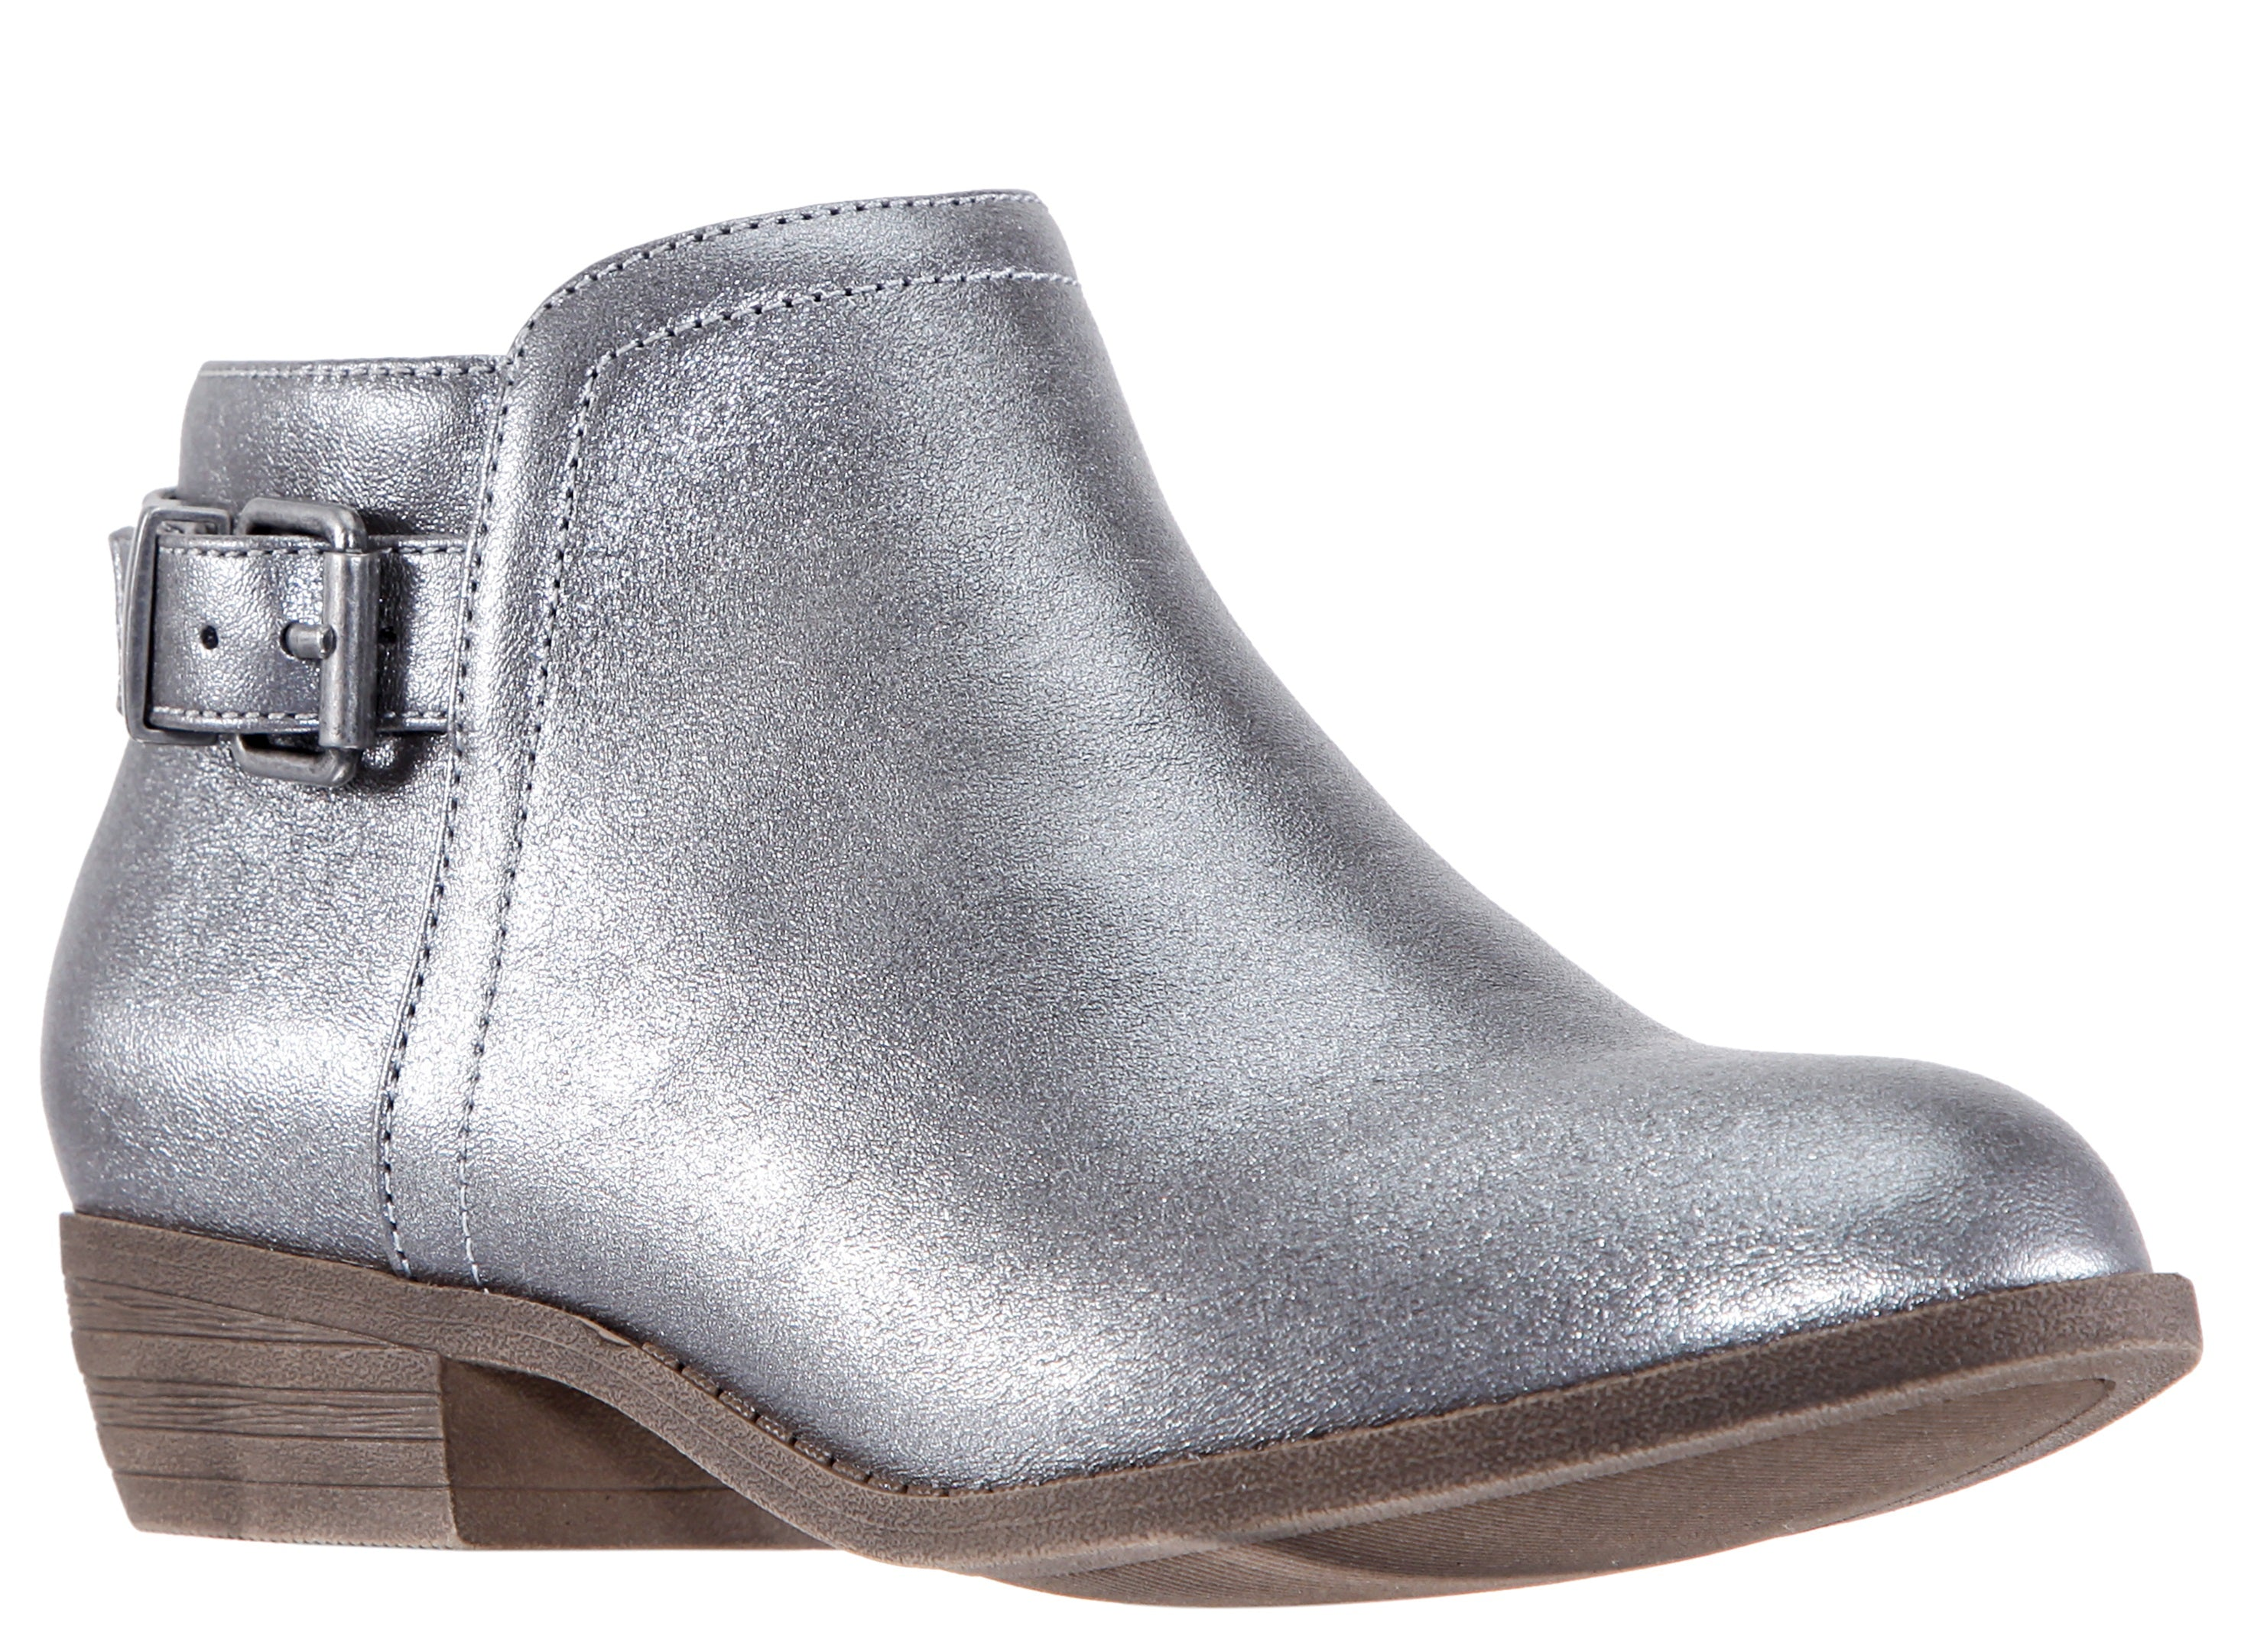 Tea Ankle Boot - Pewter Shimmer